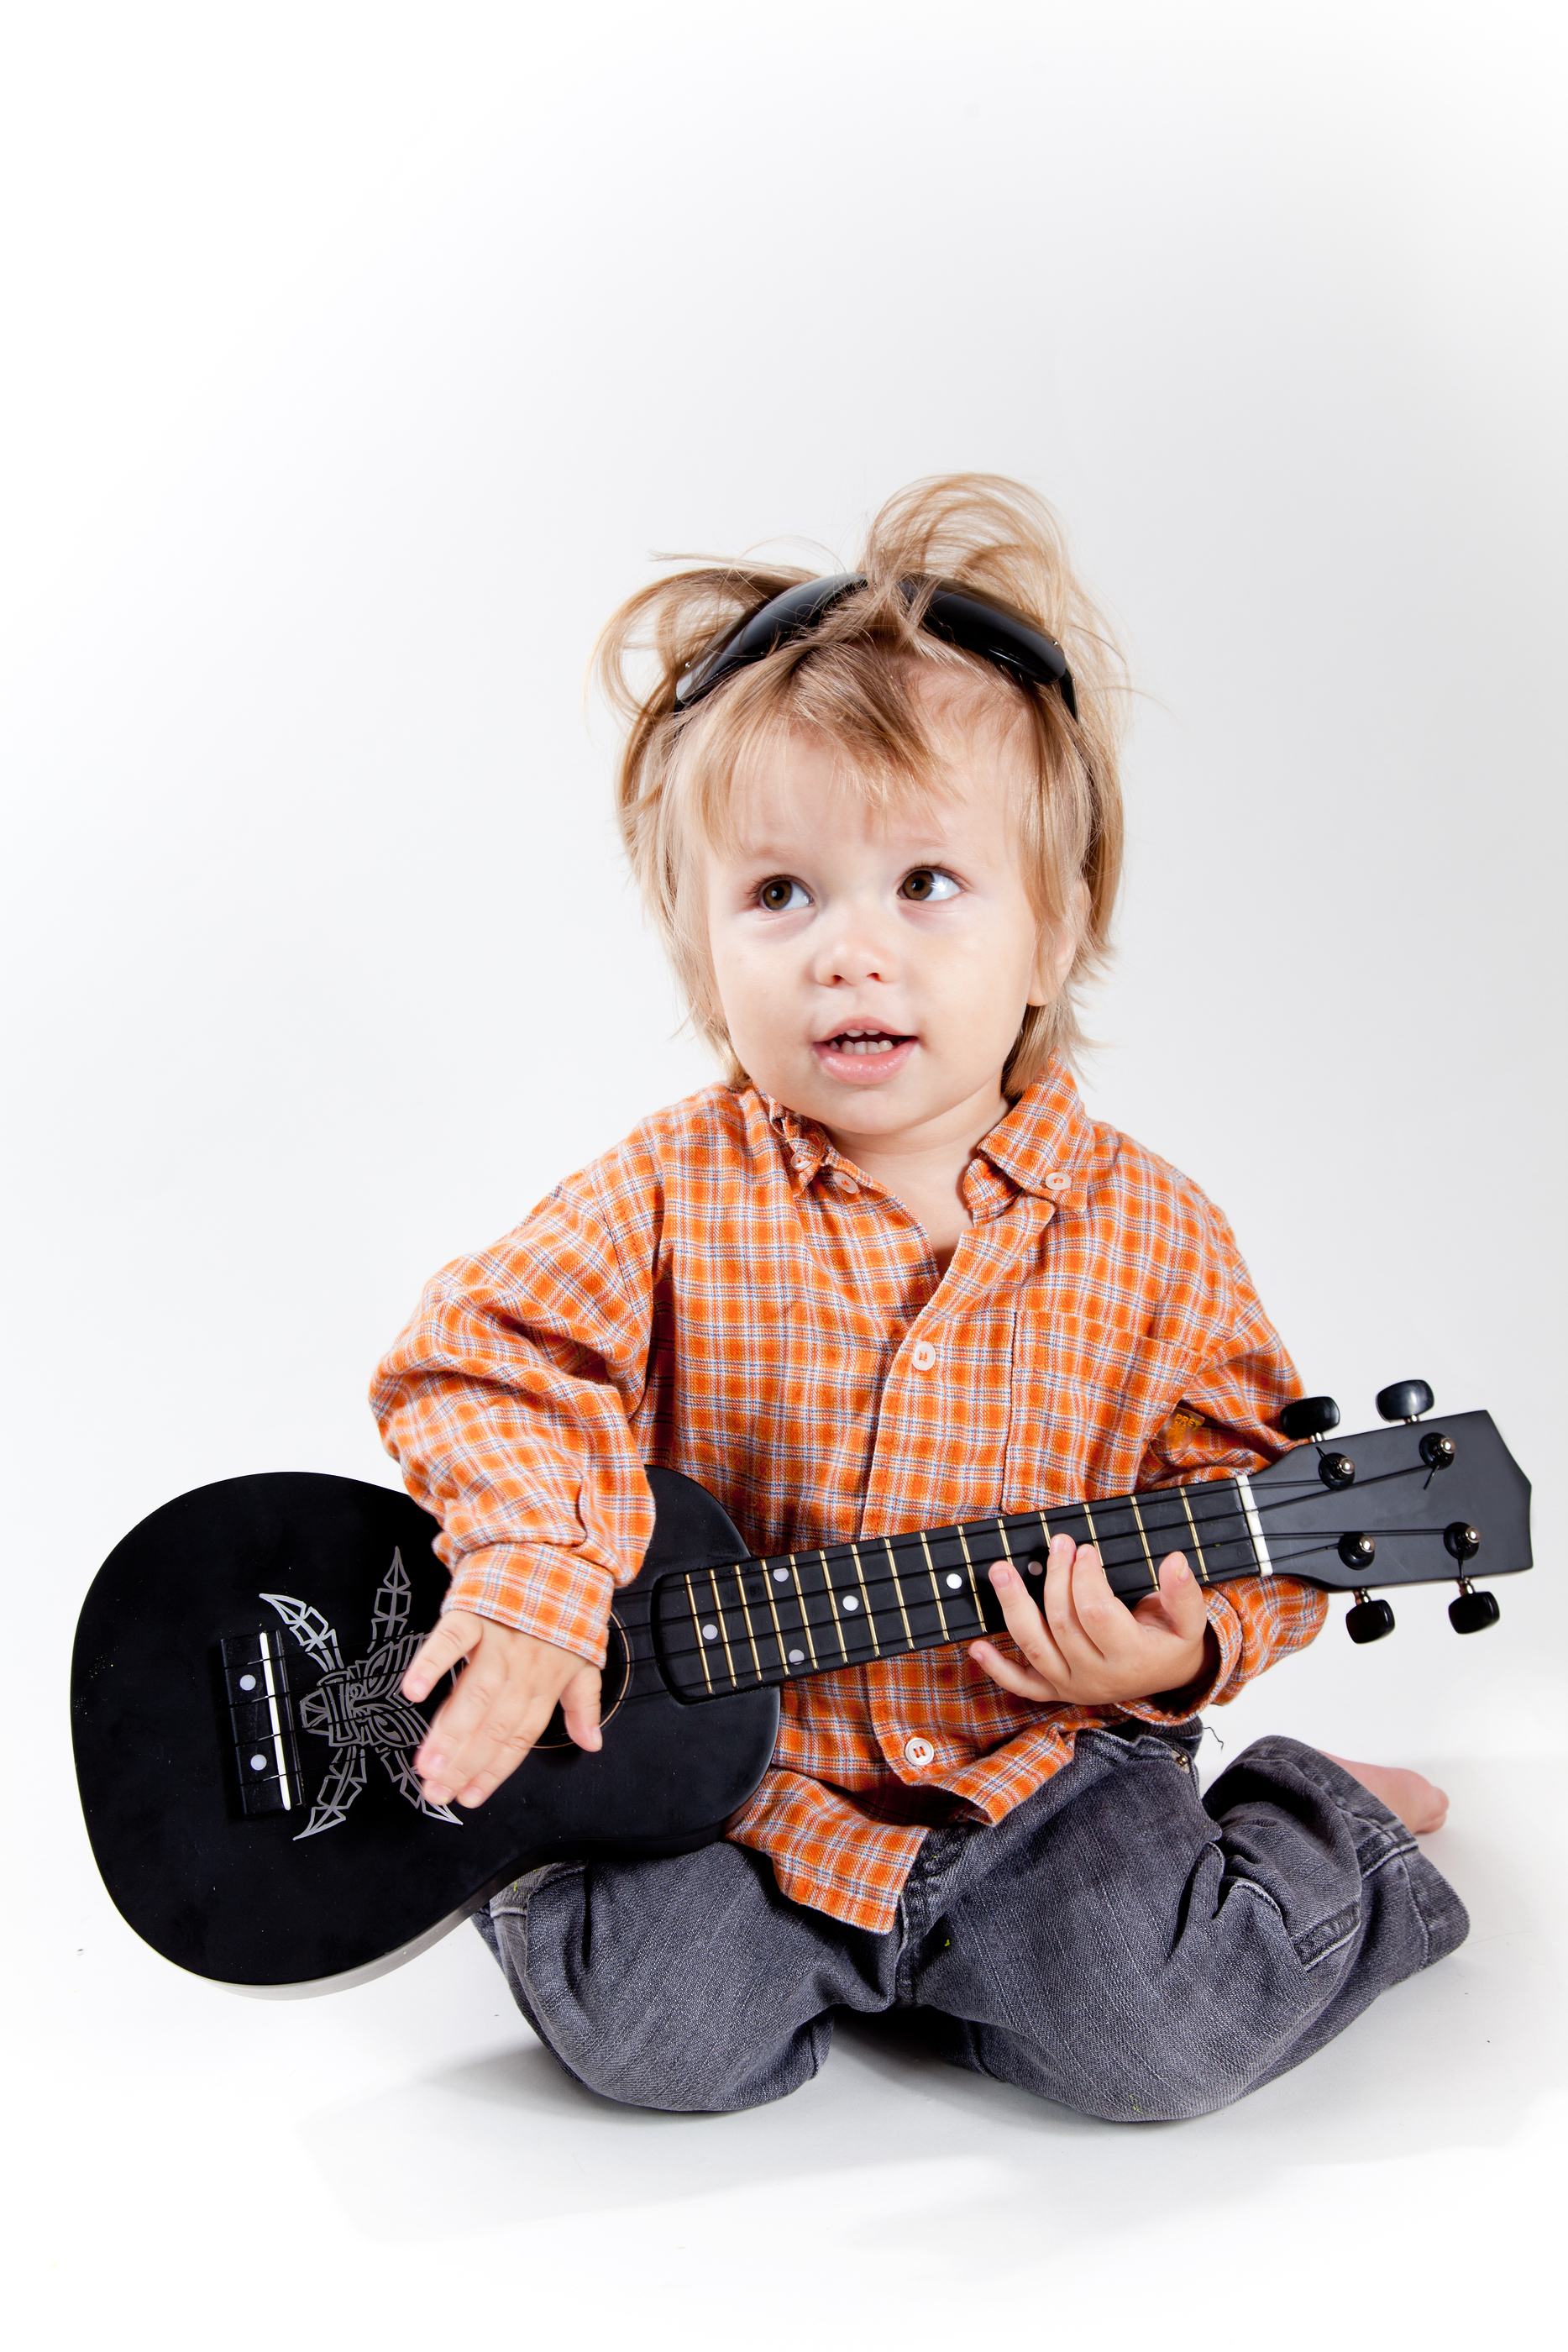 Cute Little Boy Playing Ukulele Guitar